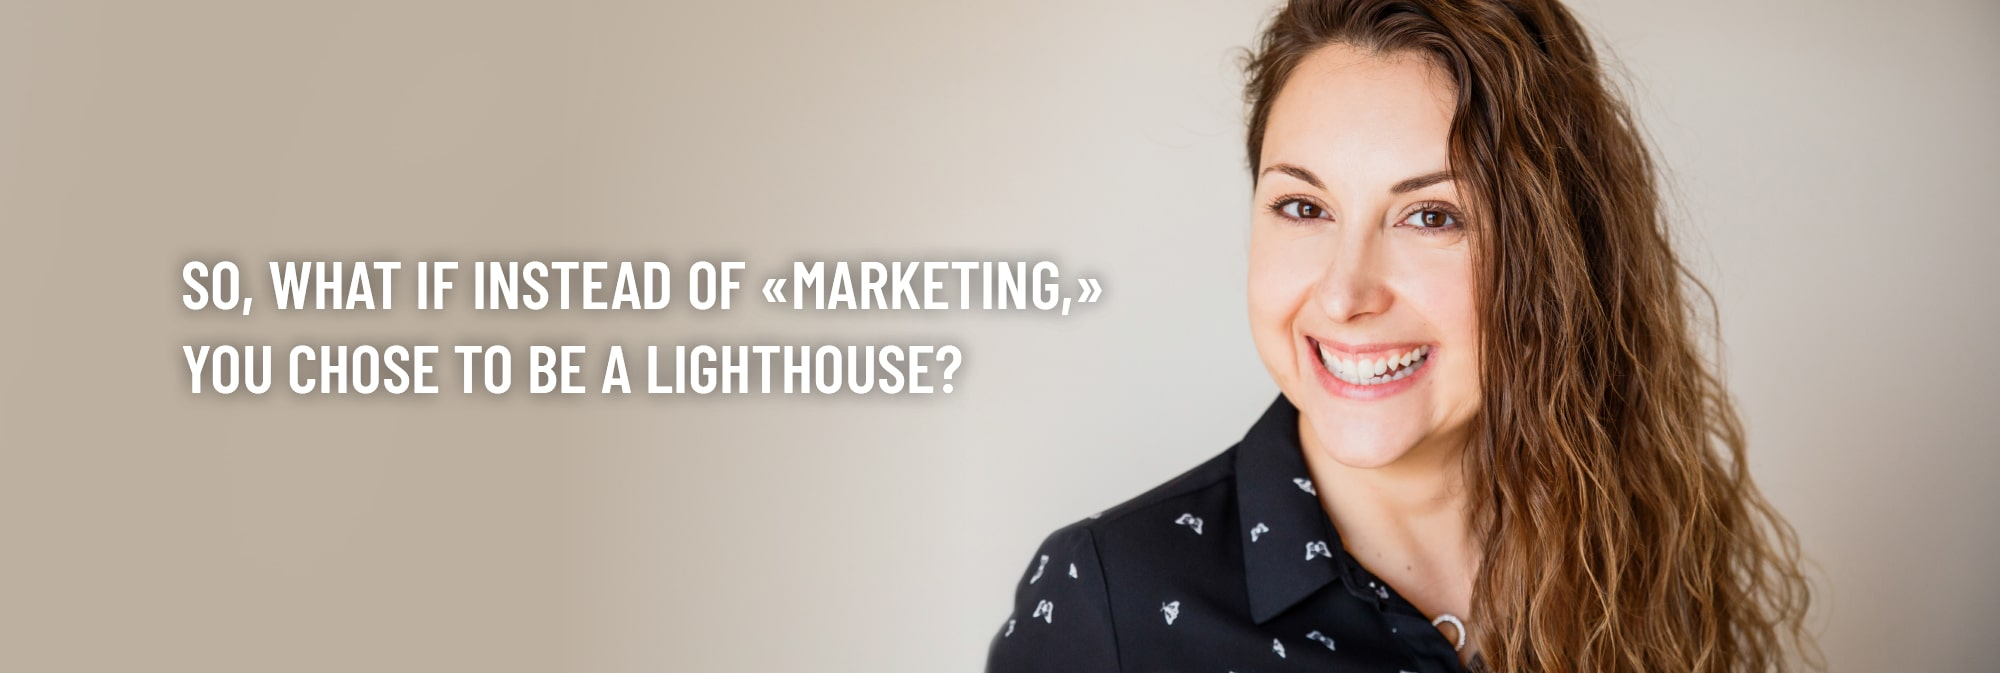 And what if instead of marketing you chose to be a lighthouse?